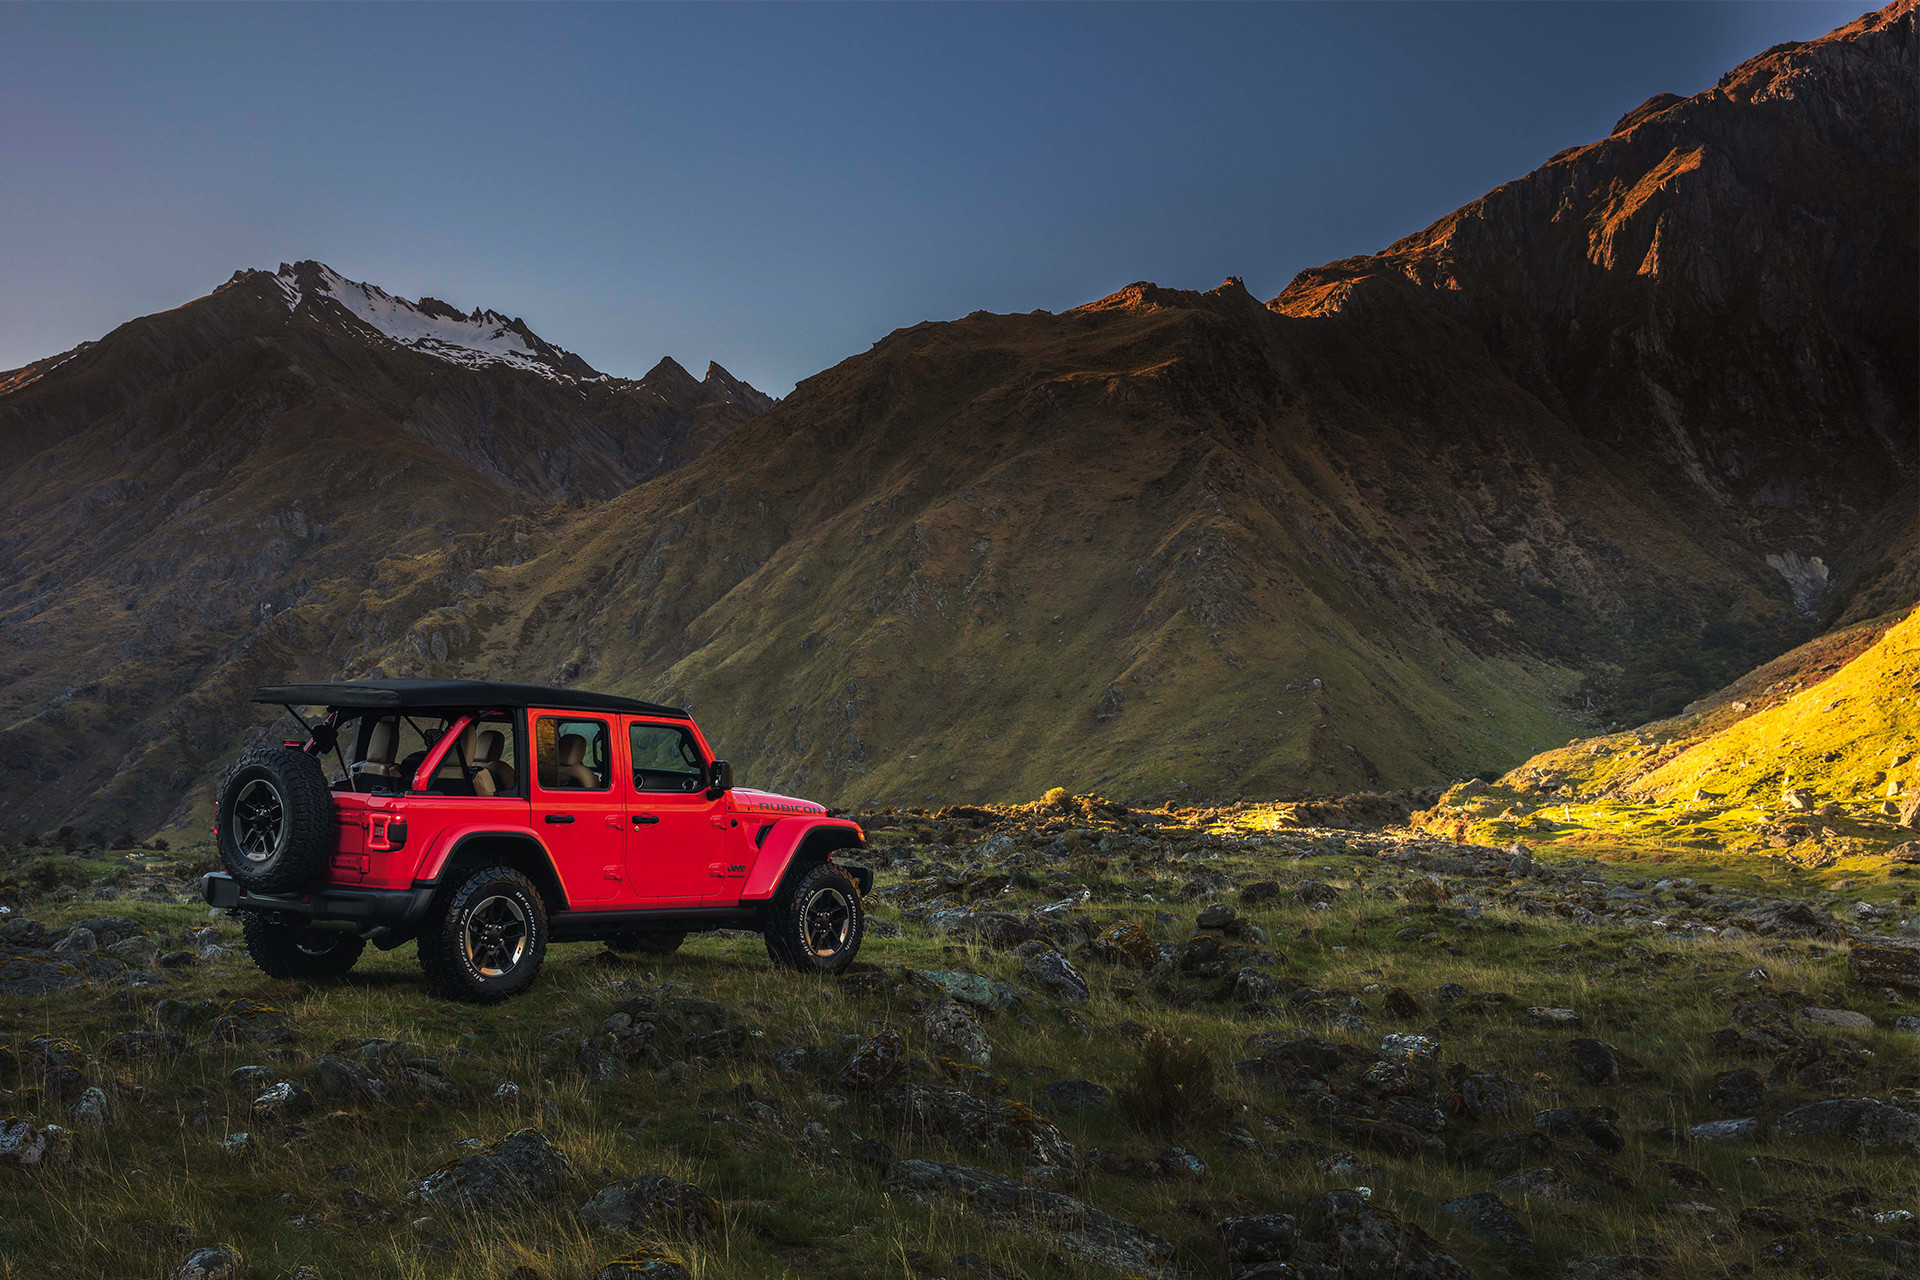 2019 Jeep Wrangler parked on mountain, shown in red